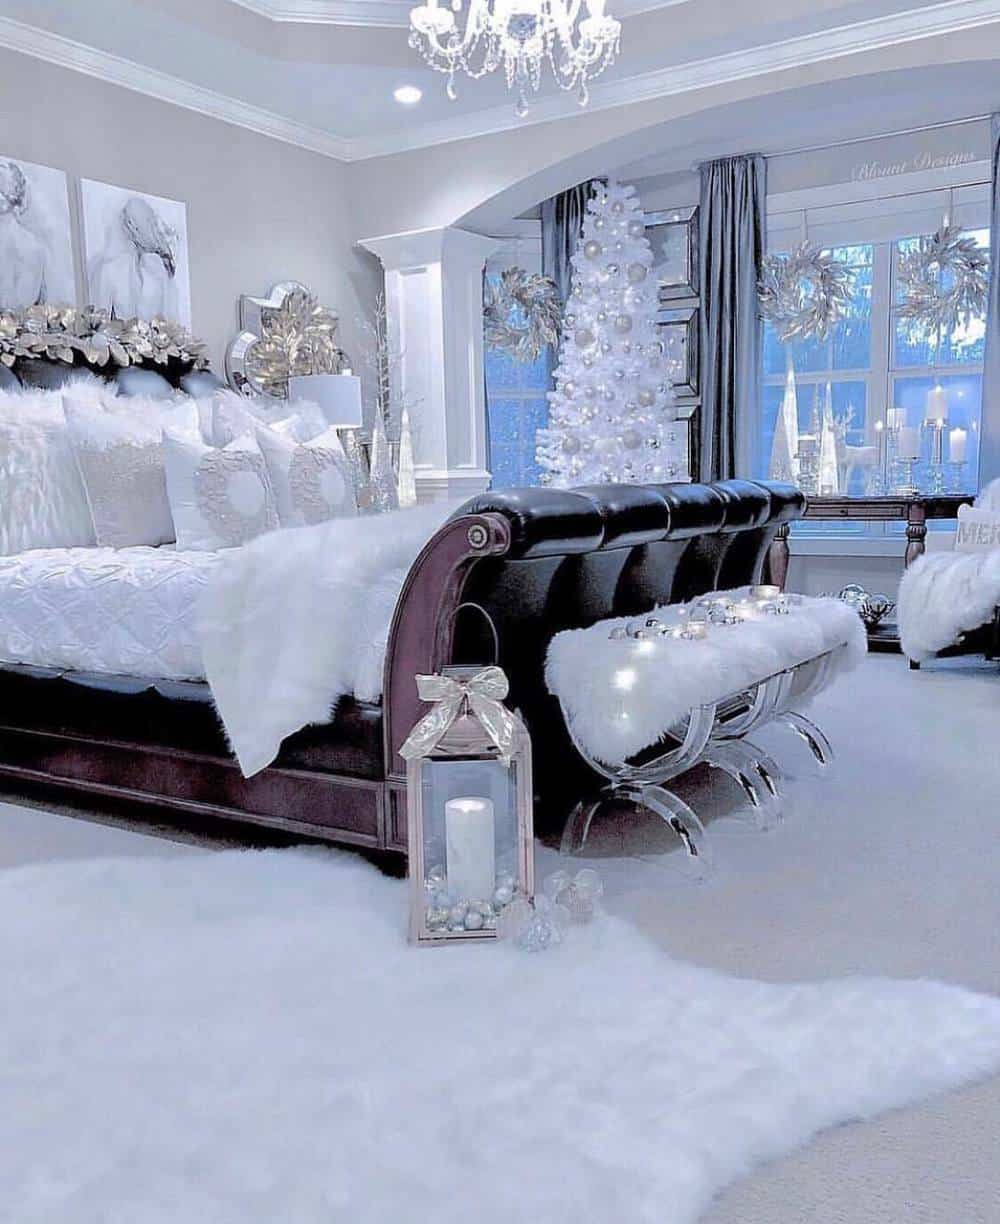 65 Amazing Small Bedroom Ideas to Create Space - Classy Style to Make Room Look Bigger